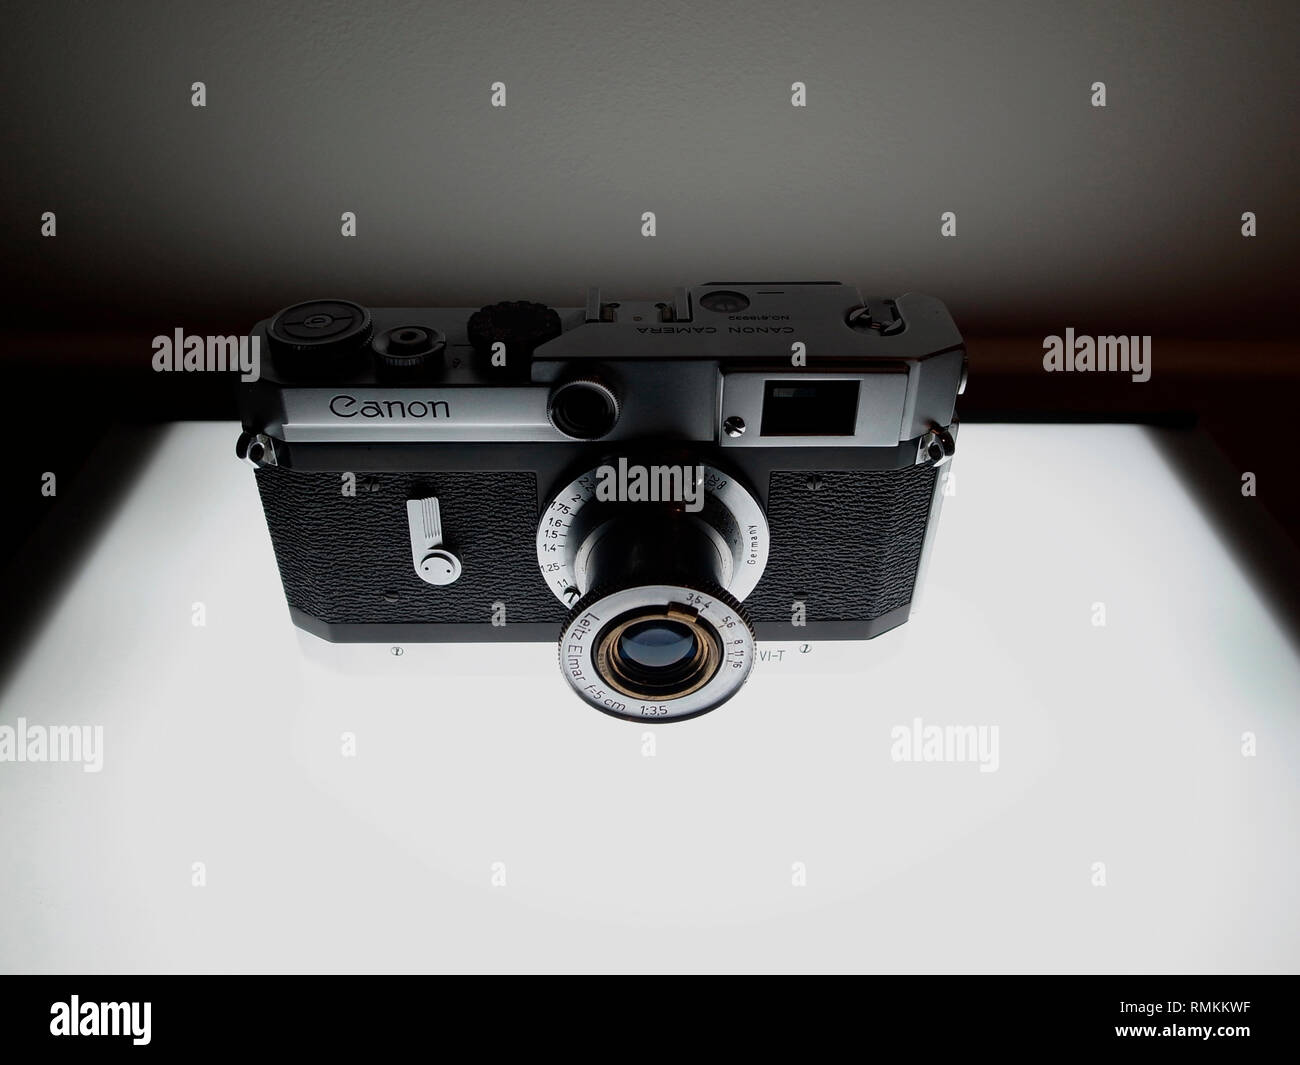 CLASSIC CAMERA - CANON VT RANGEFINDER ( 1956- 1957 ) CAMERA LMT MOUNT WITH A 50 MN LEITZ ELMAR 3.5 LENS - CANON CAMERA - RANGEFINDER CAMERA - VINTAGE CAMERA - JAPAN CAMERA - FILM CAMERA RANGEFINDER - COLOR ARCHIVE © Frédéric BEAUMONT - Stock Image